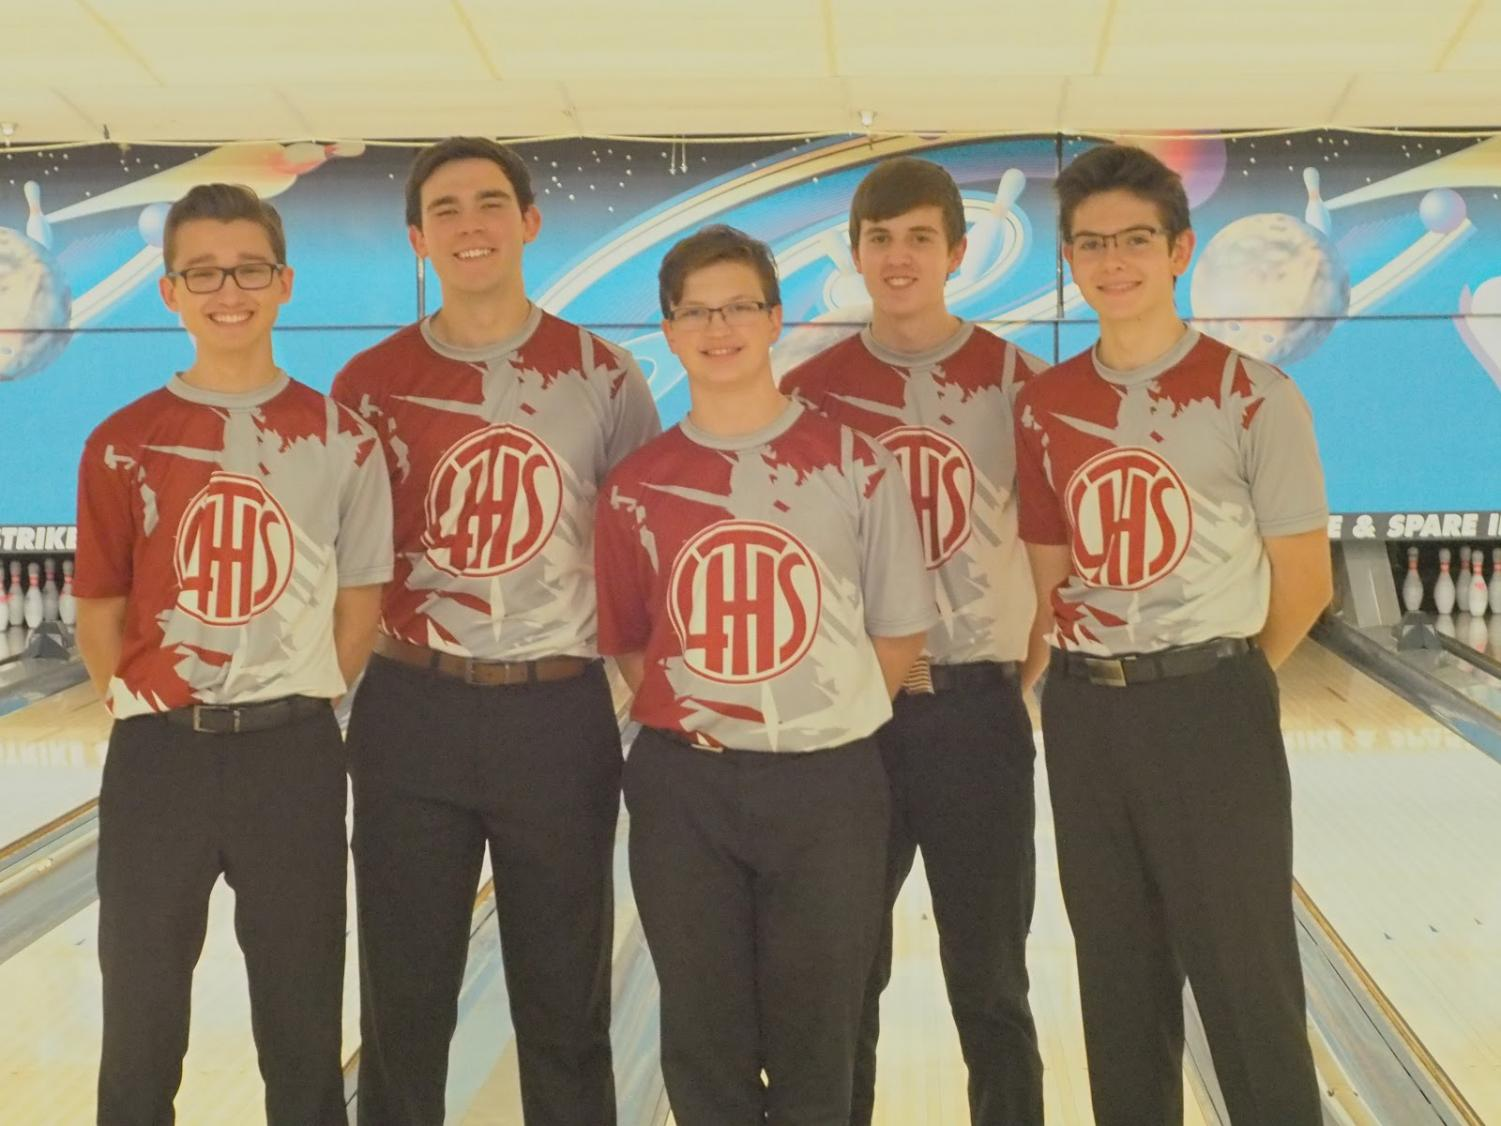 Some of the members of the Boys' Varsity Bowling Team after a win at Strike and Spare, Dec 7th